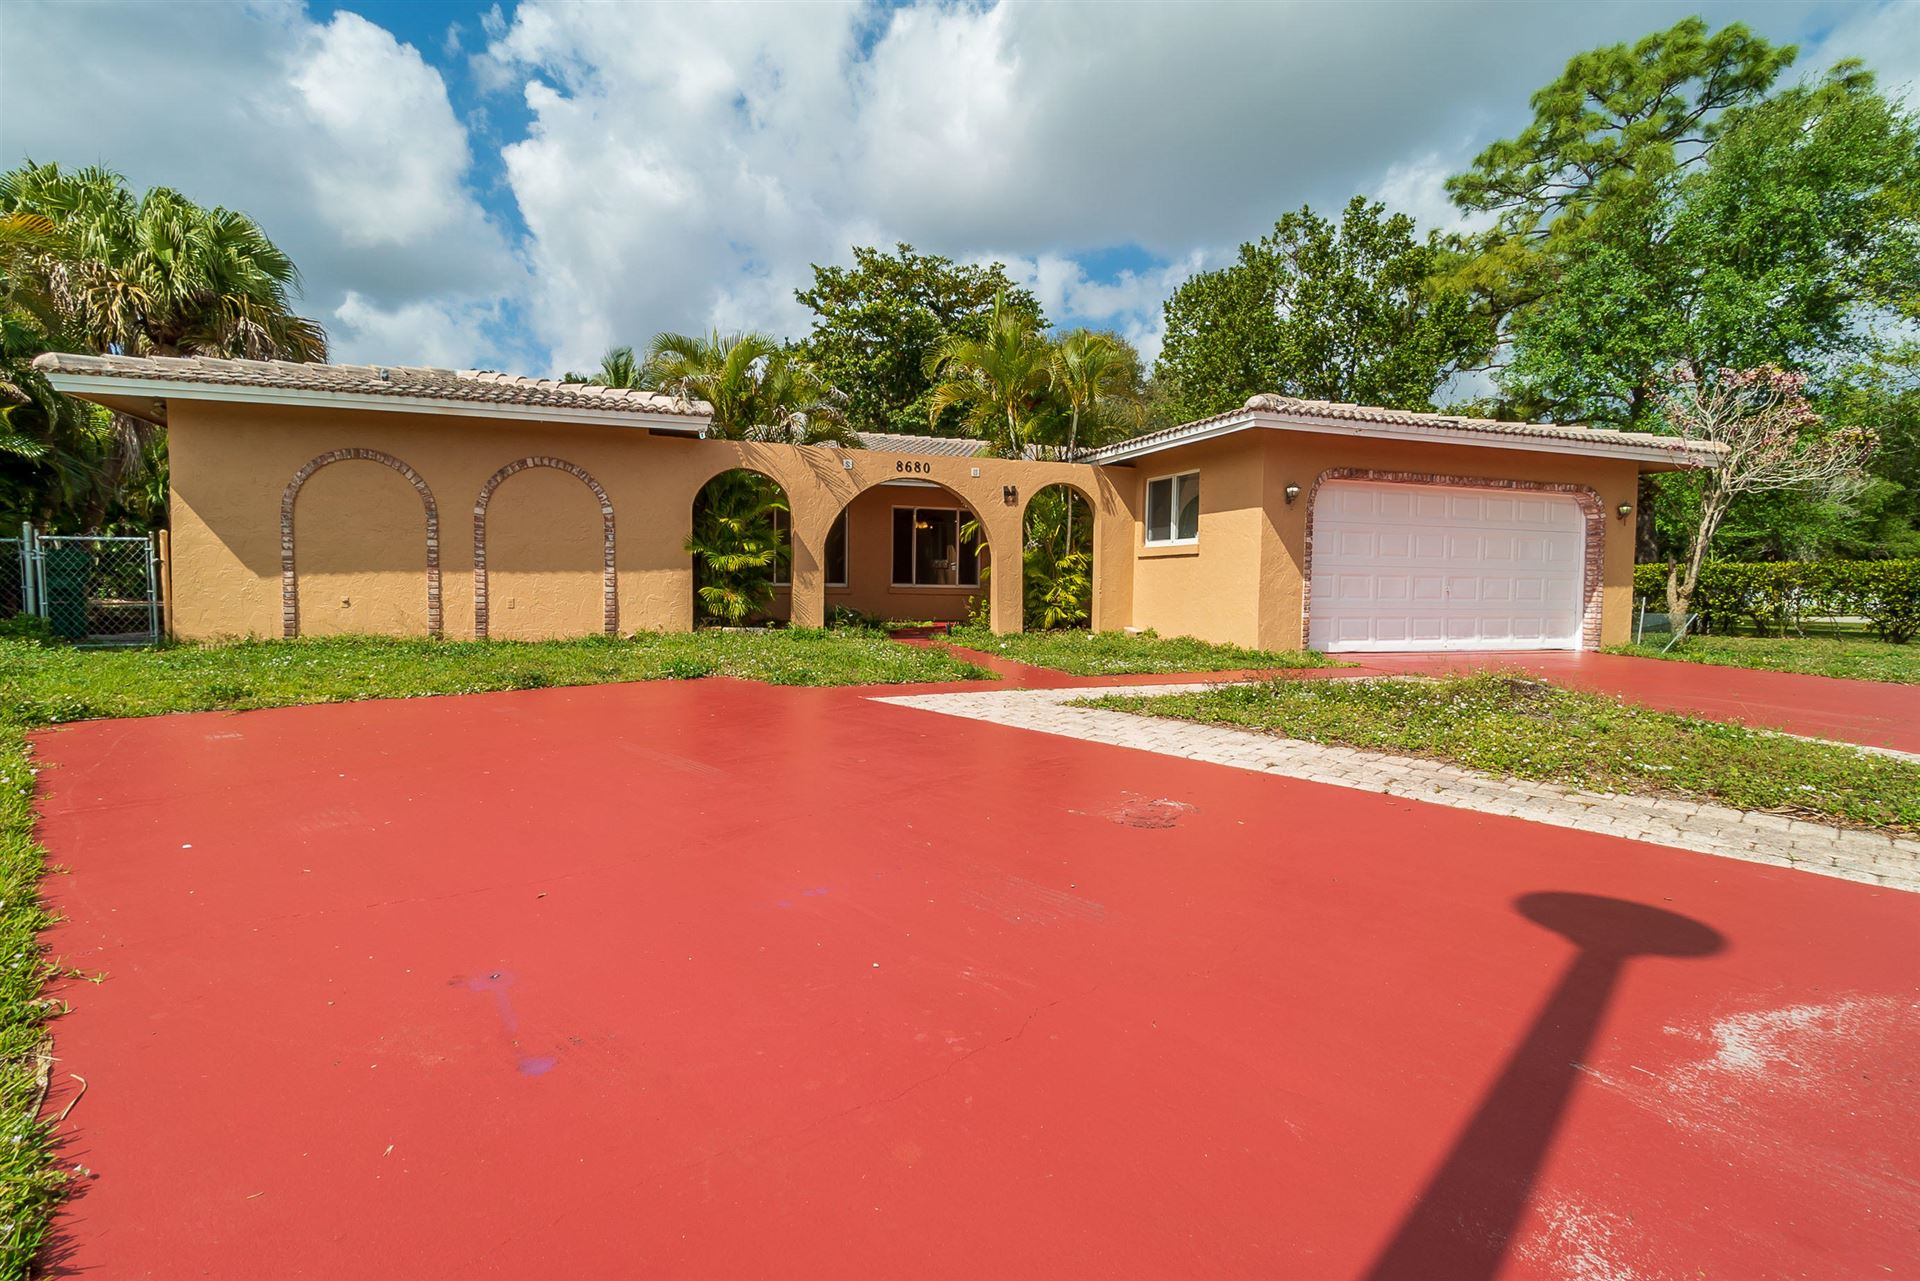 8680 NW 32nd Street #N, Coral Springs, FL 33065 - MLS#: RX-10710820